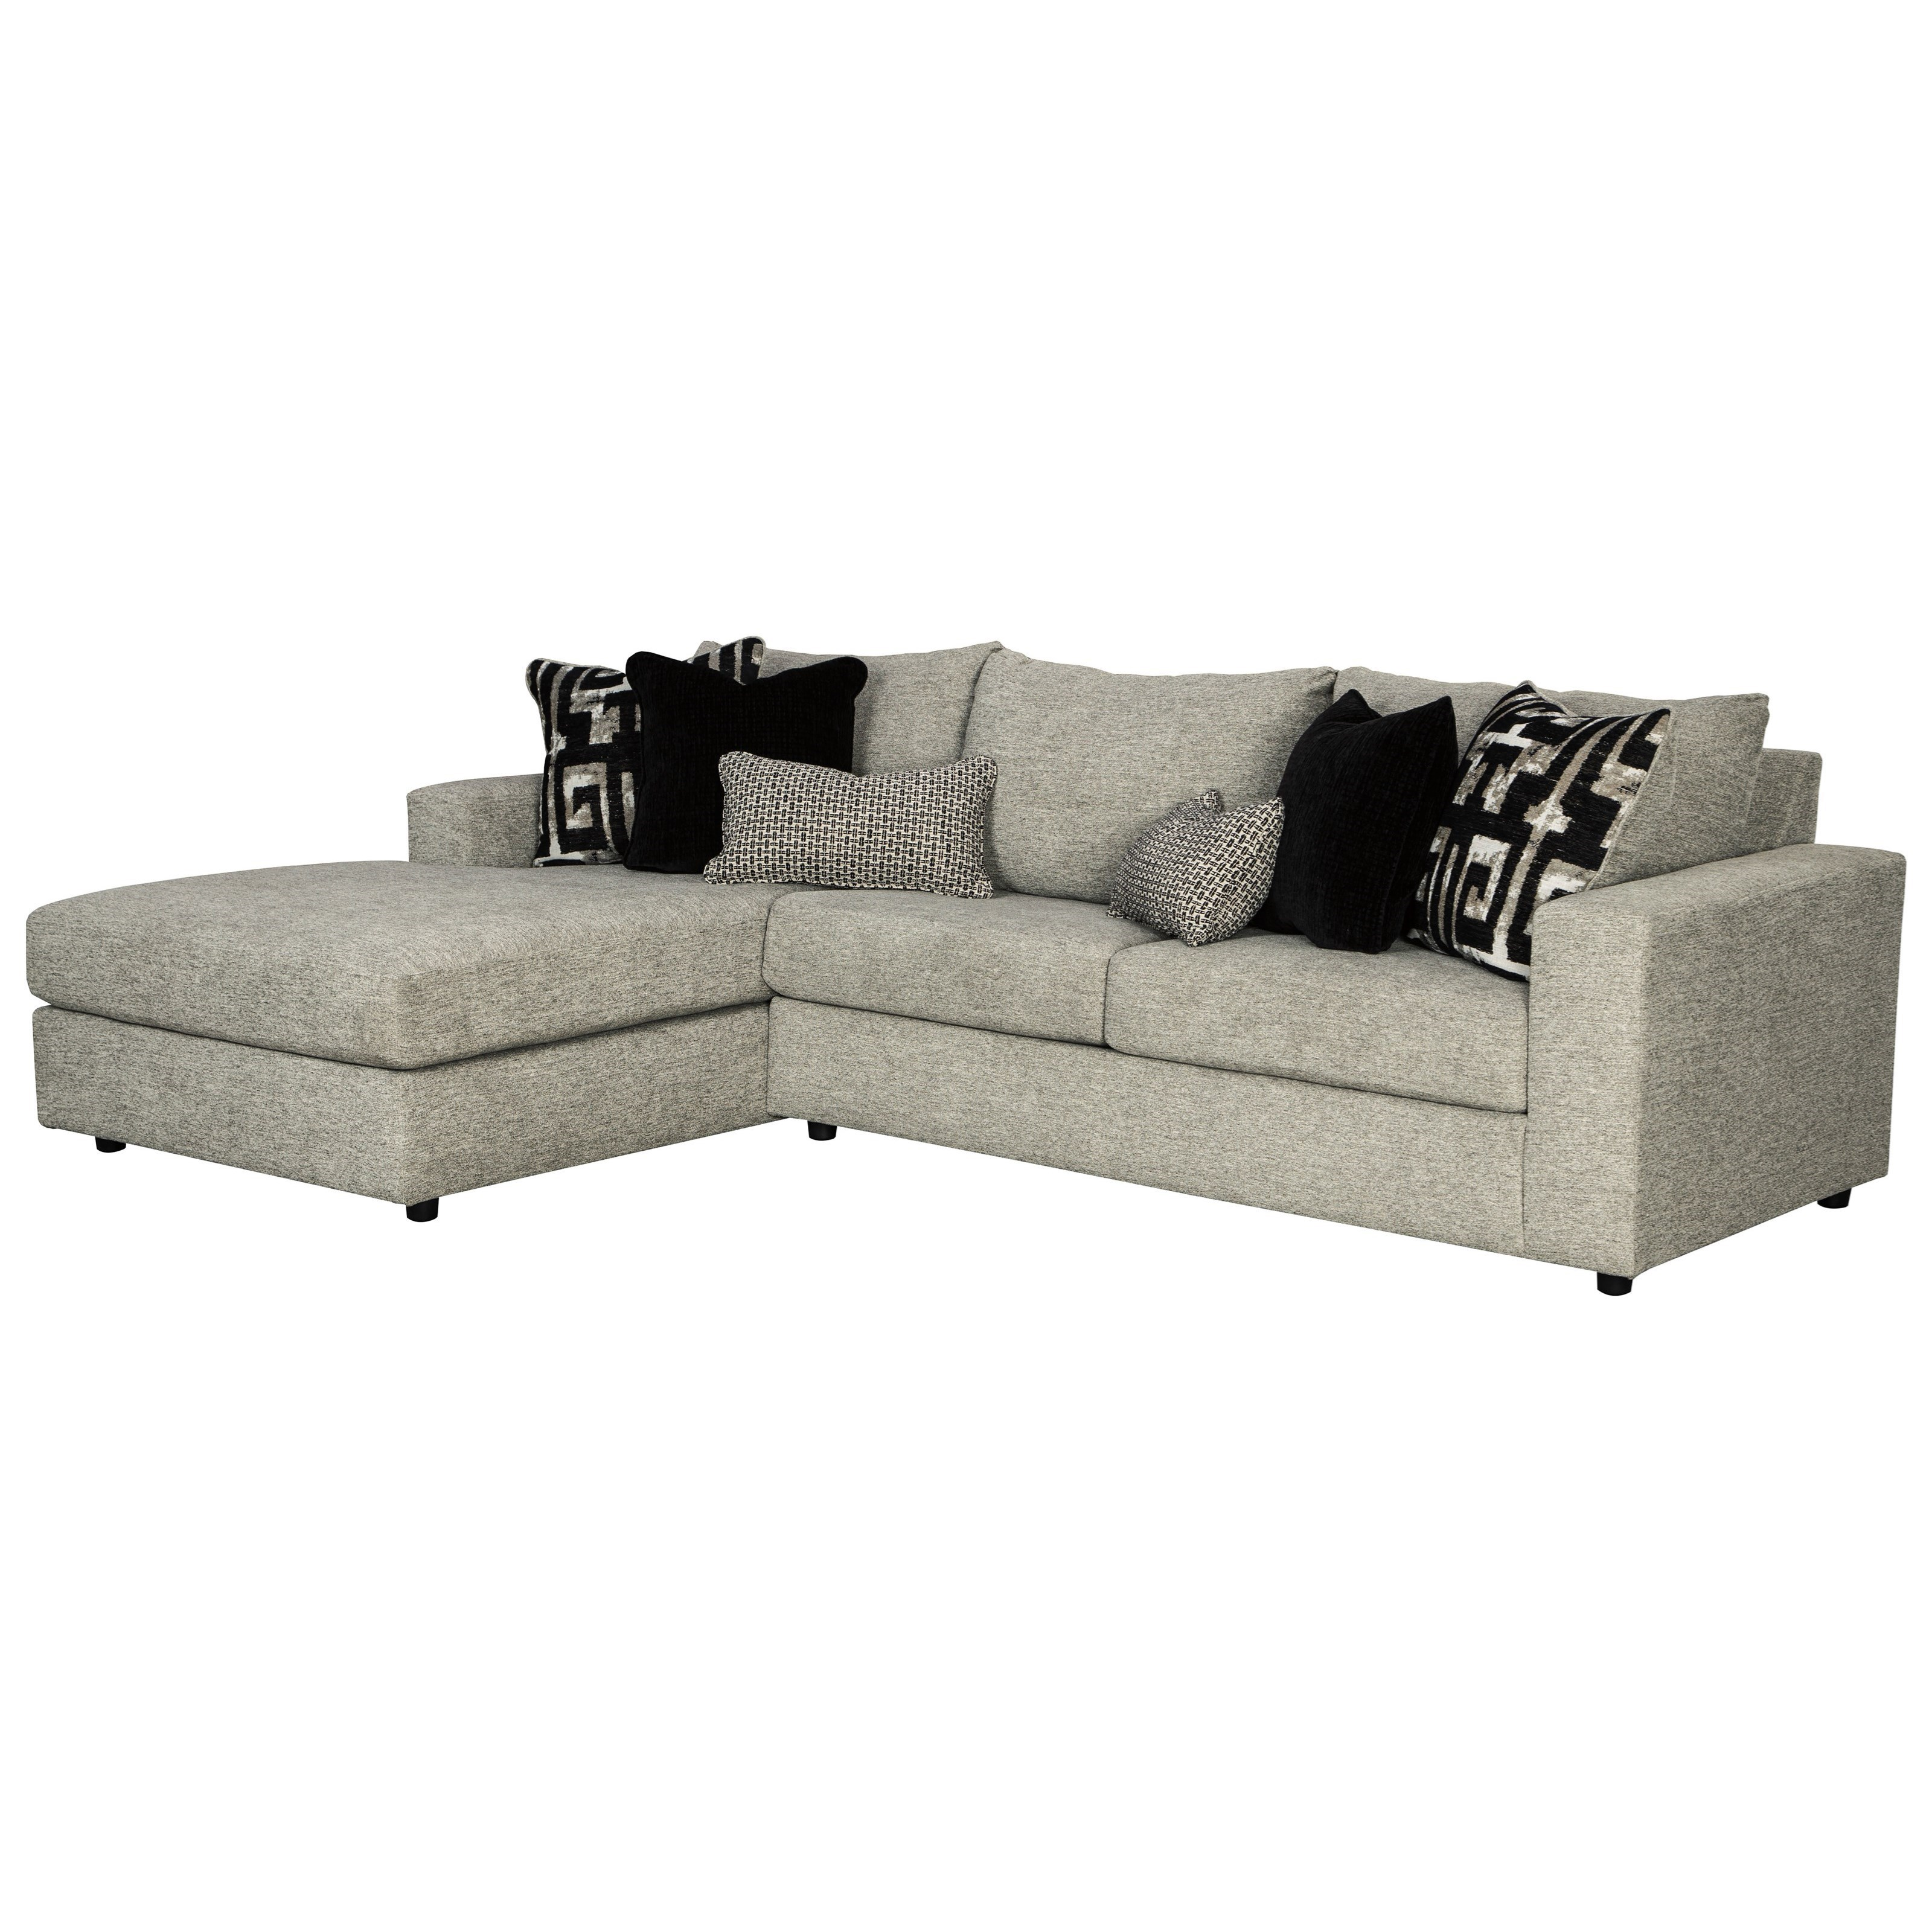 Signature Design By Ashley Ravenstone Contemporary 3 Seat Sectional Sofa With Laf Chaise Conlin S Furniture Sectional Sofas